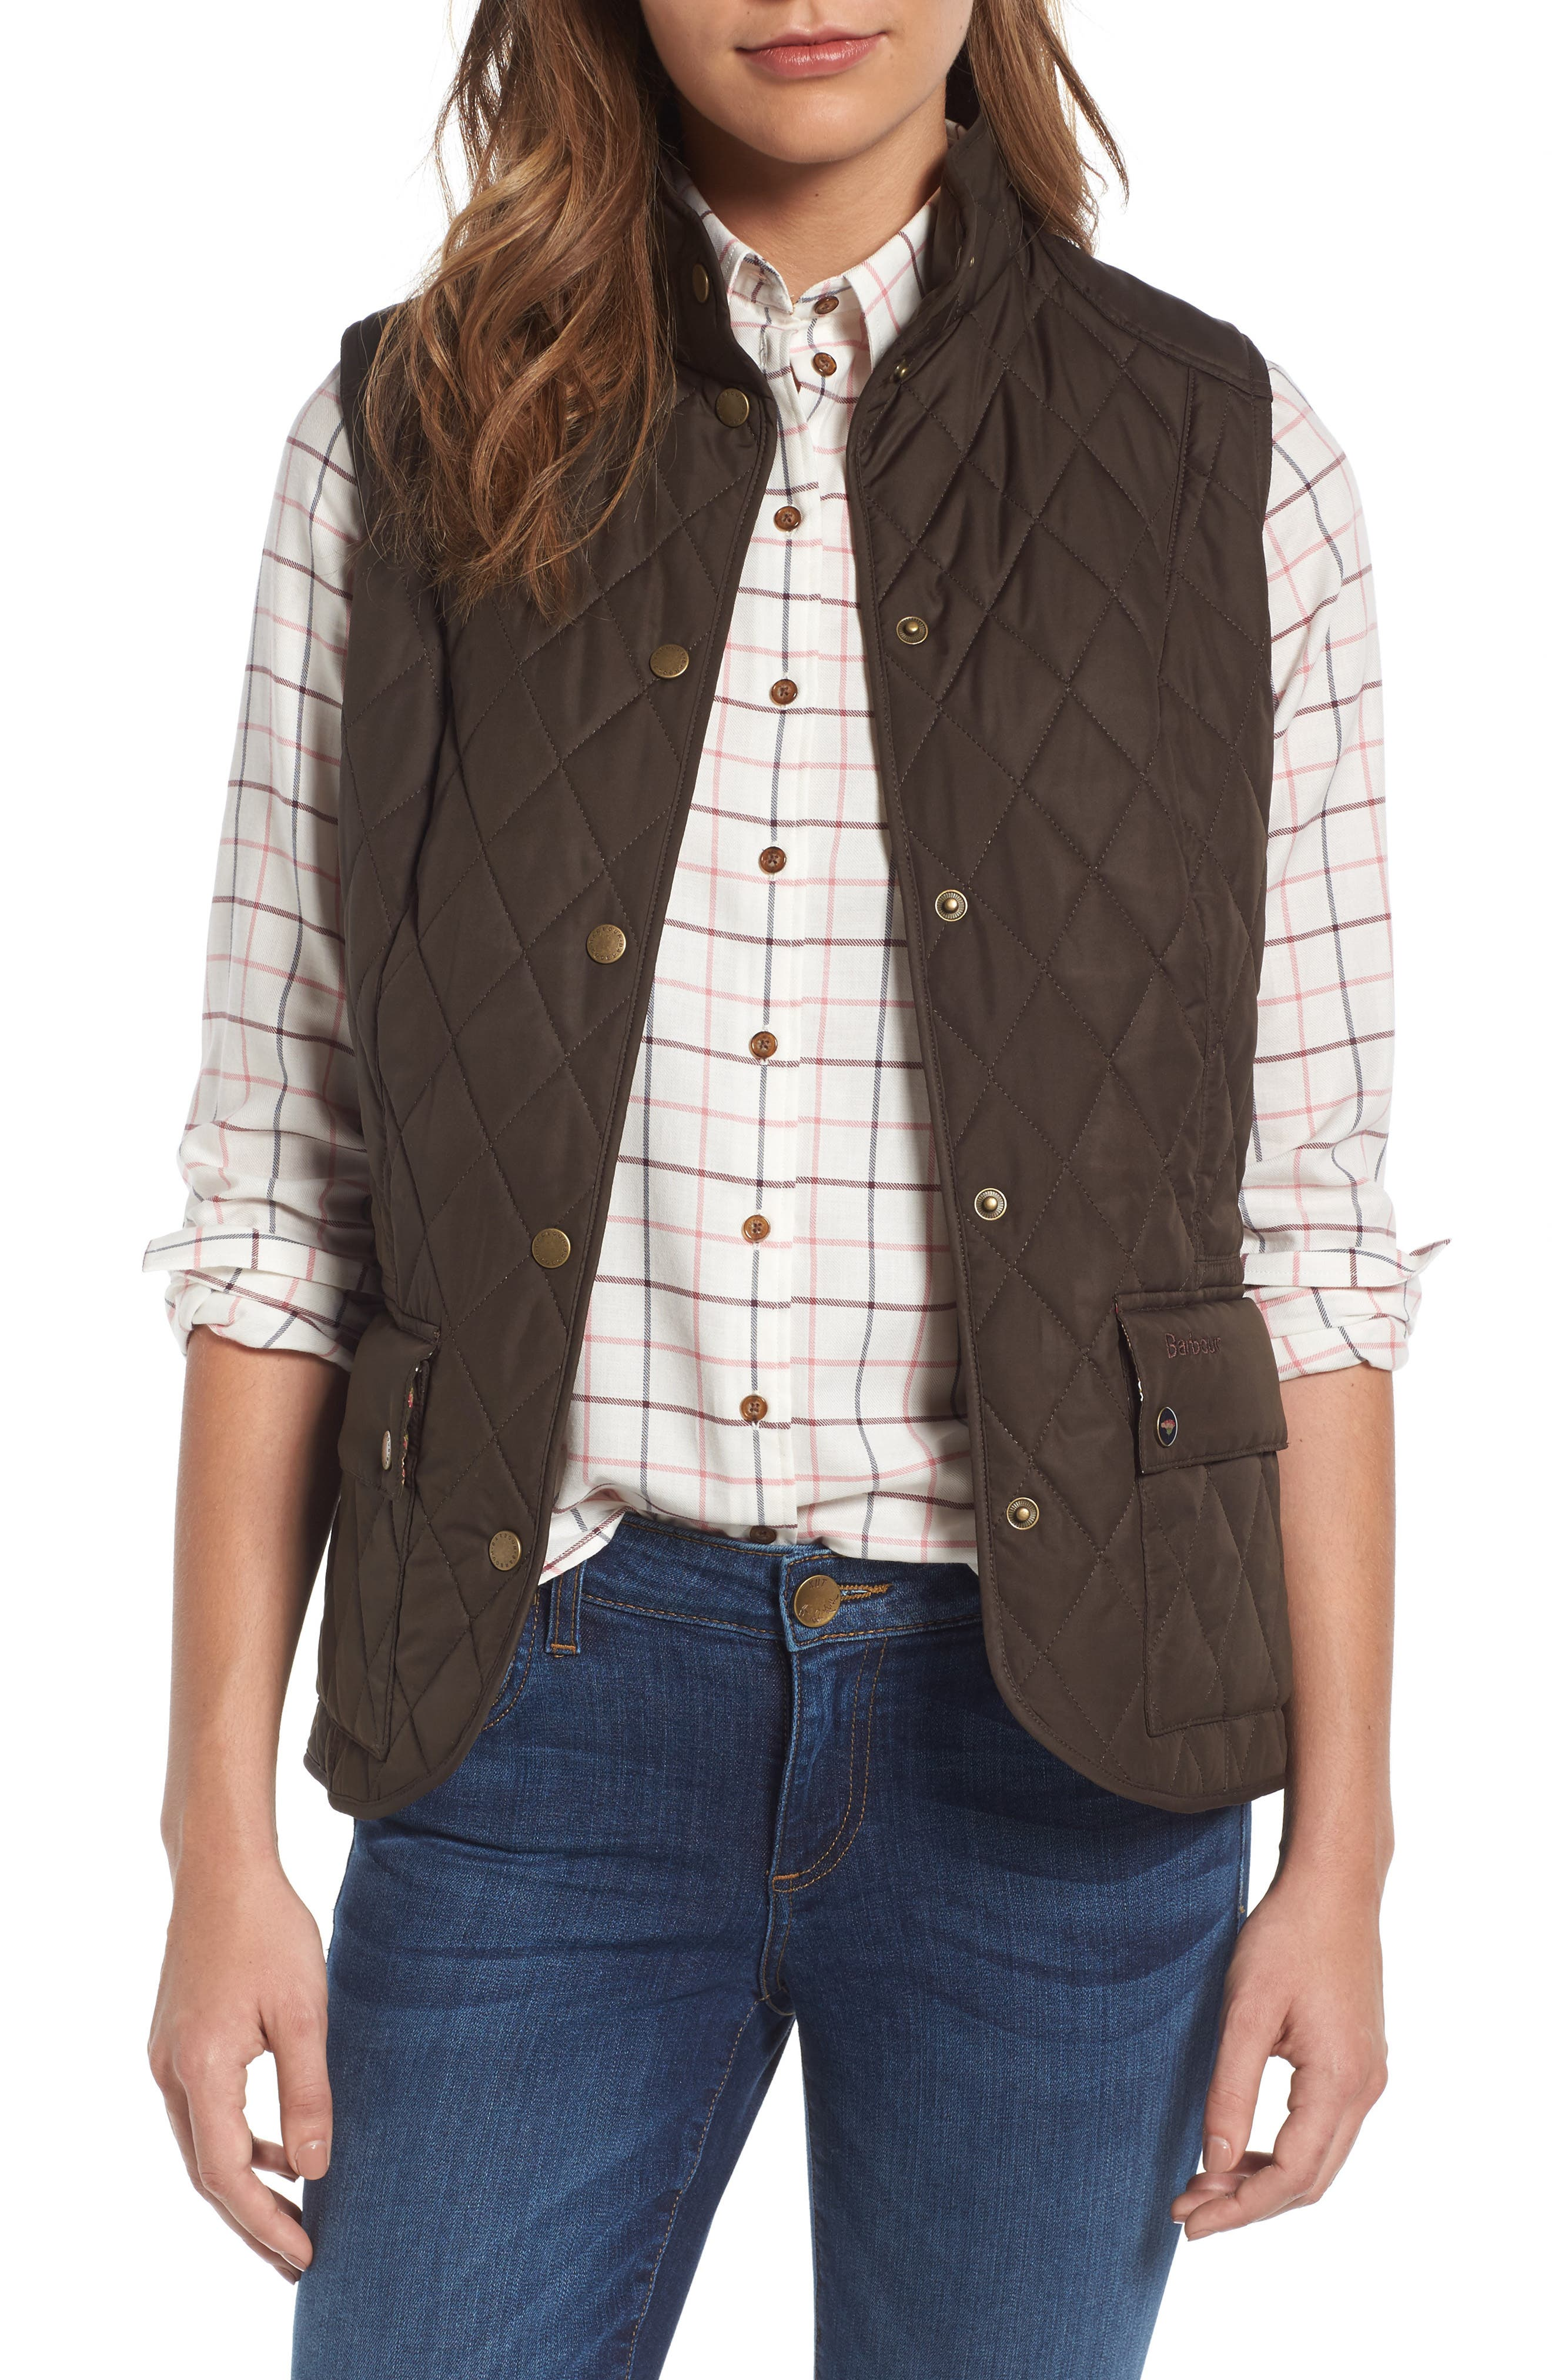 BARBOUR, Saddleworth Quilted Vest, Main thumbnail 1, color, 340